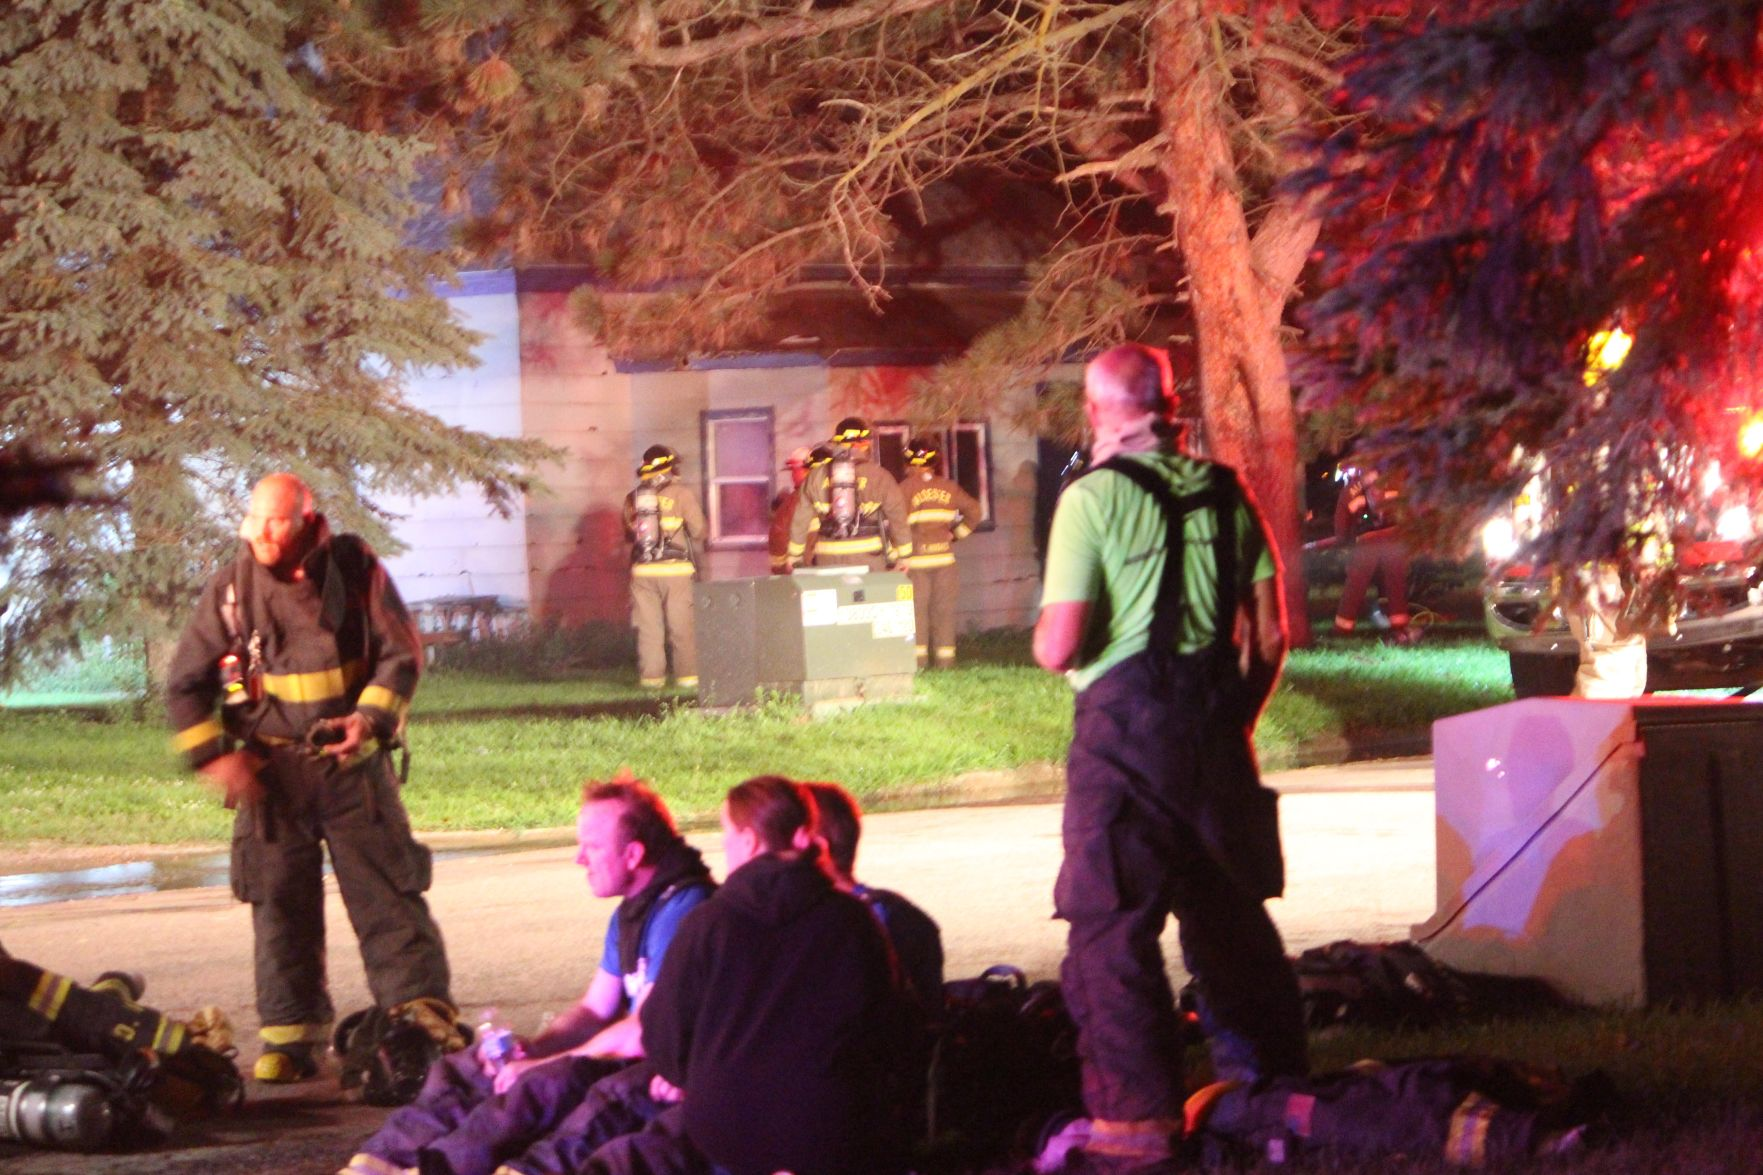 Four departments called to house fire